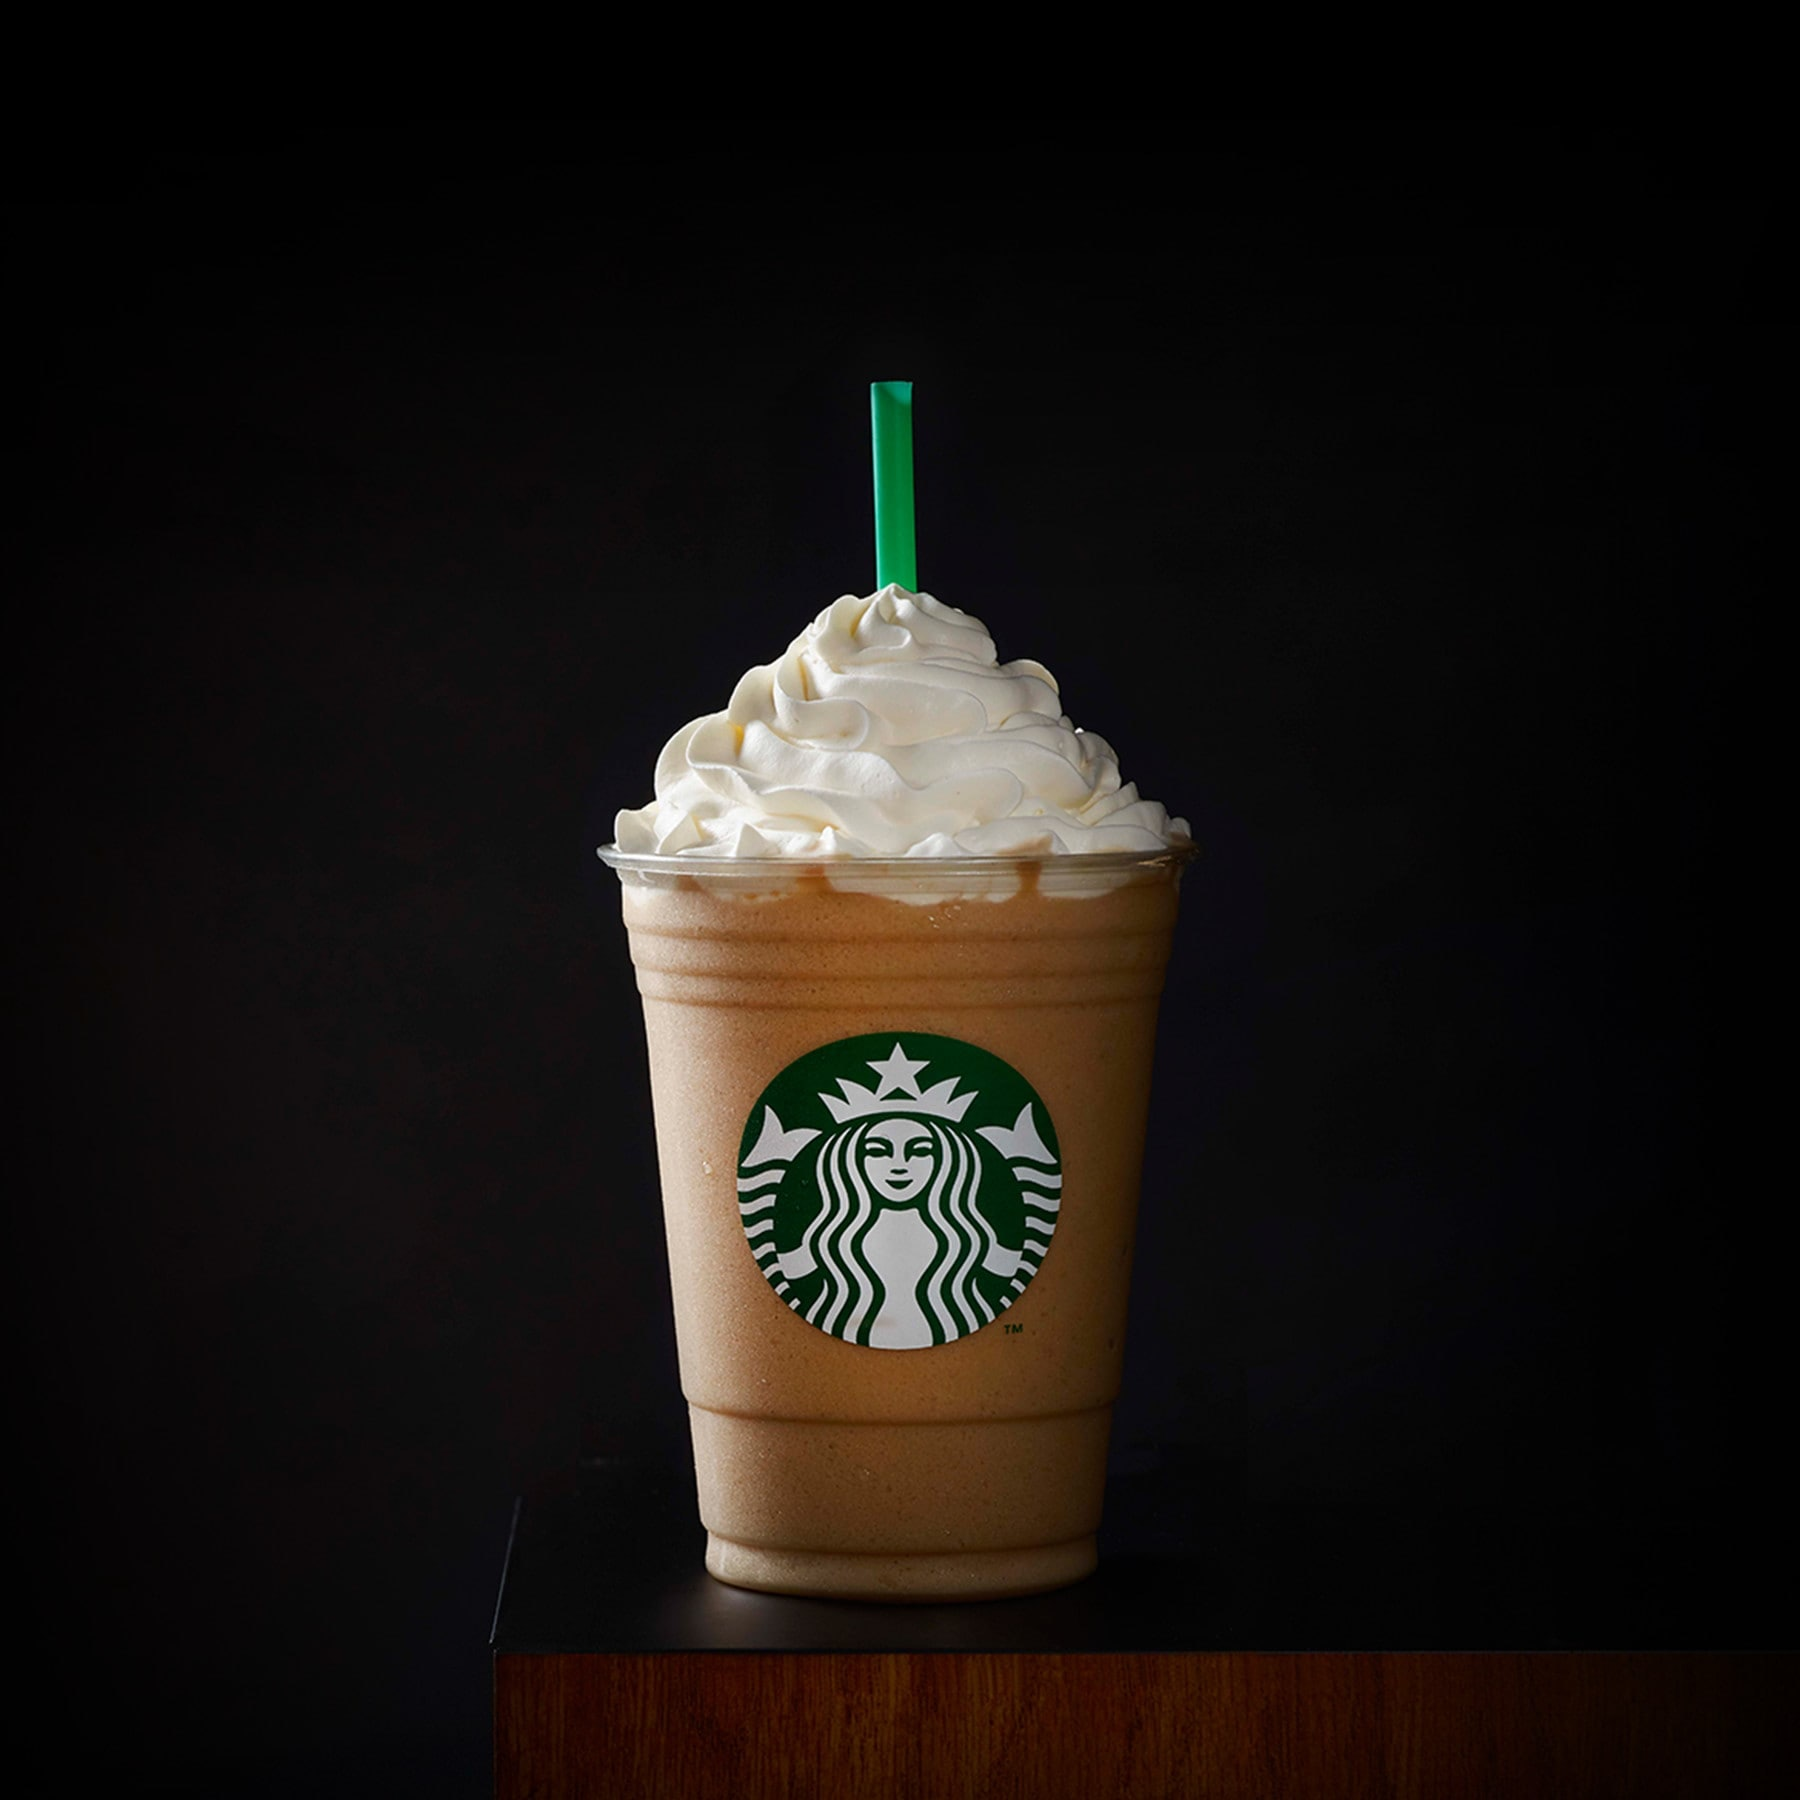 7 other starbucks drinks you should try with the pumpkin spice latte